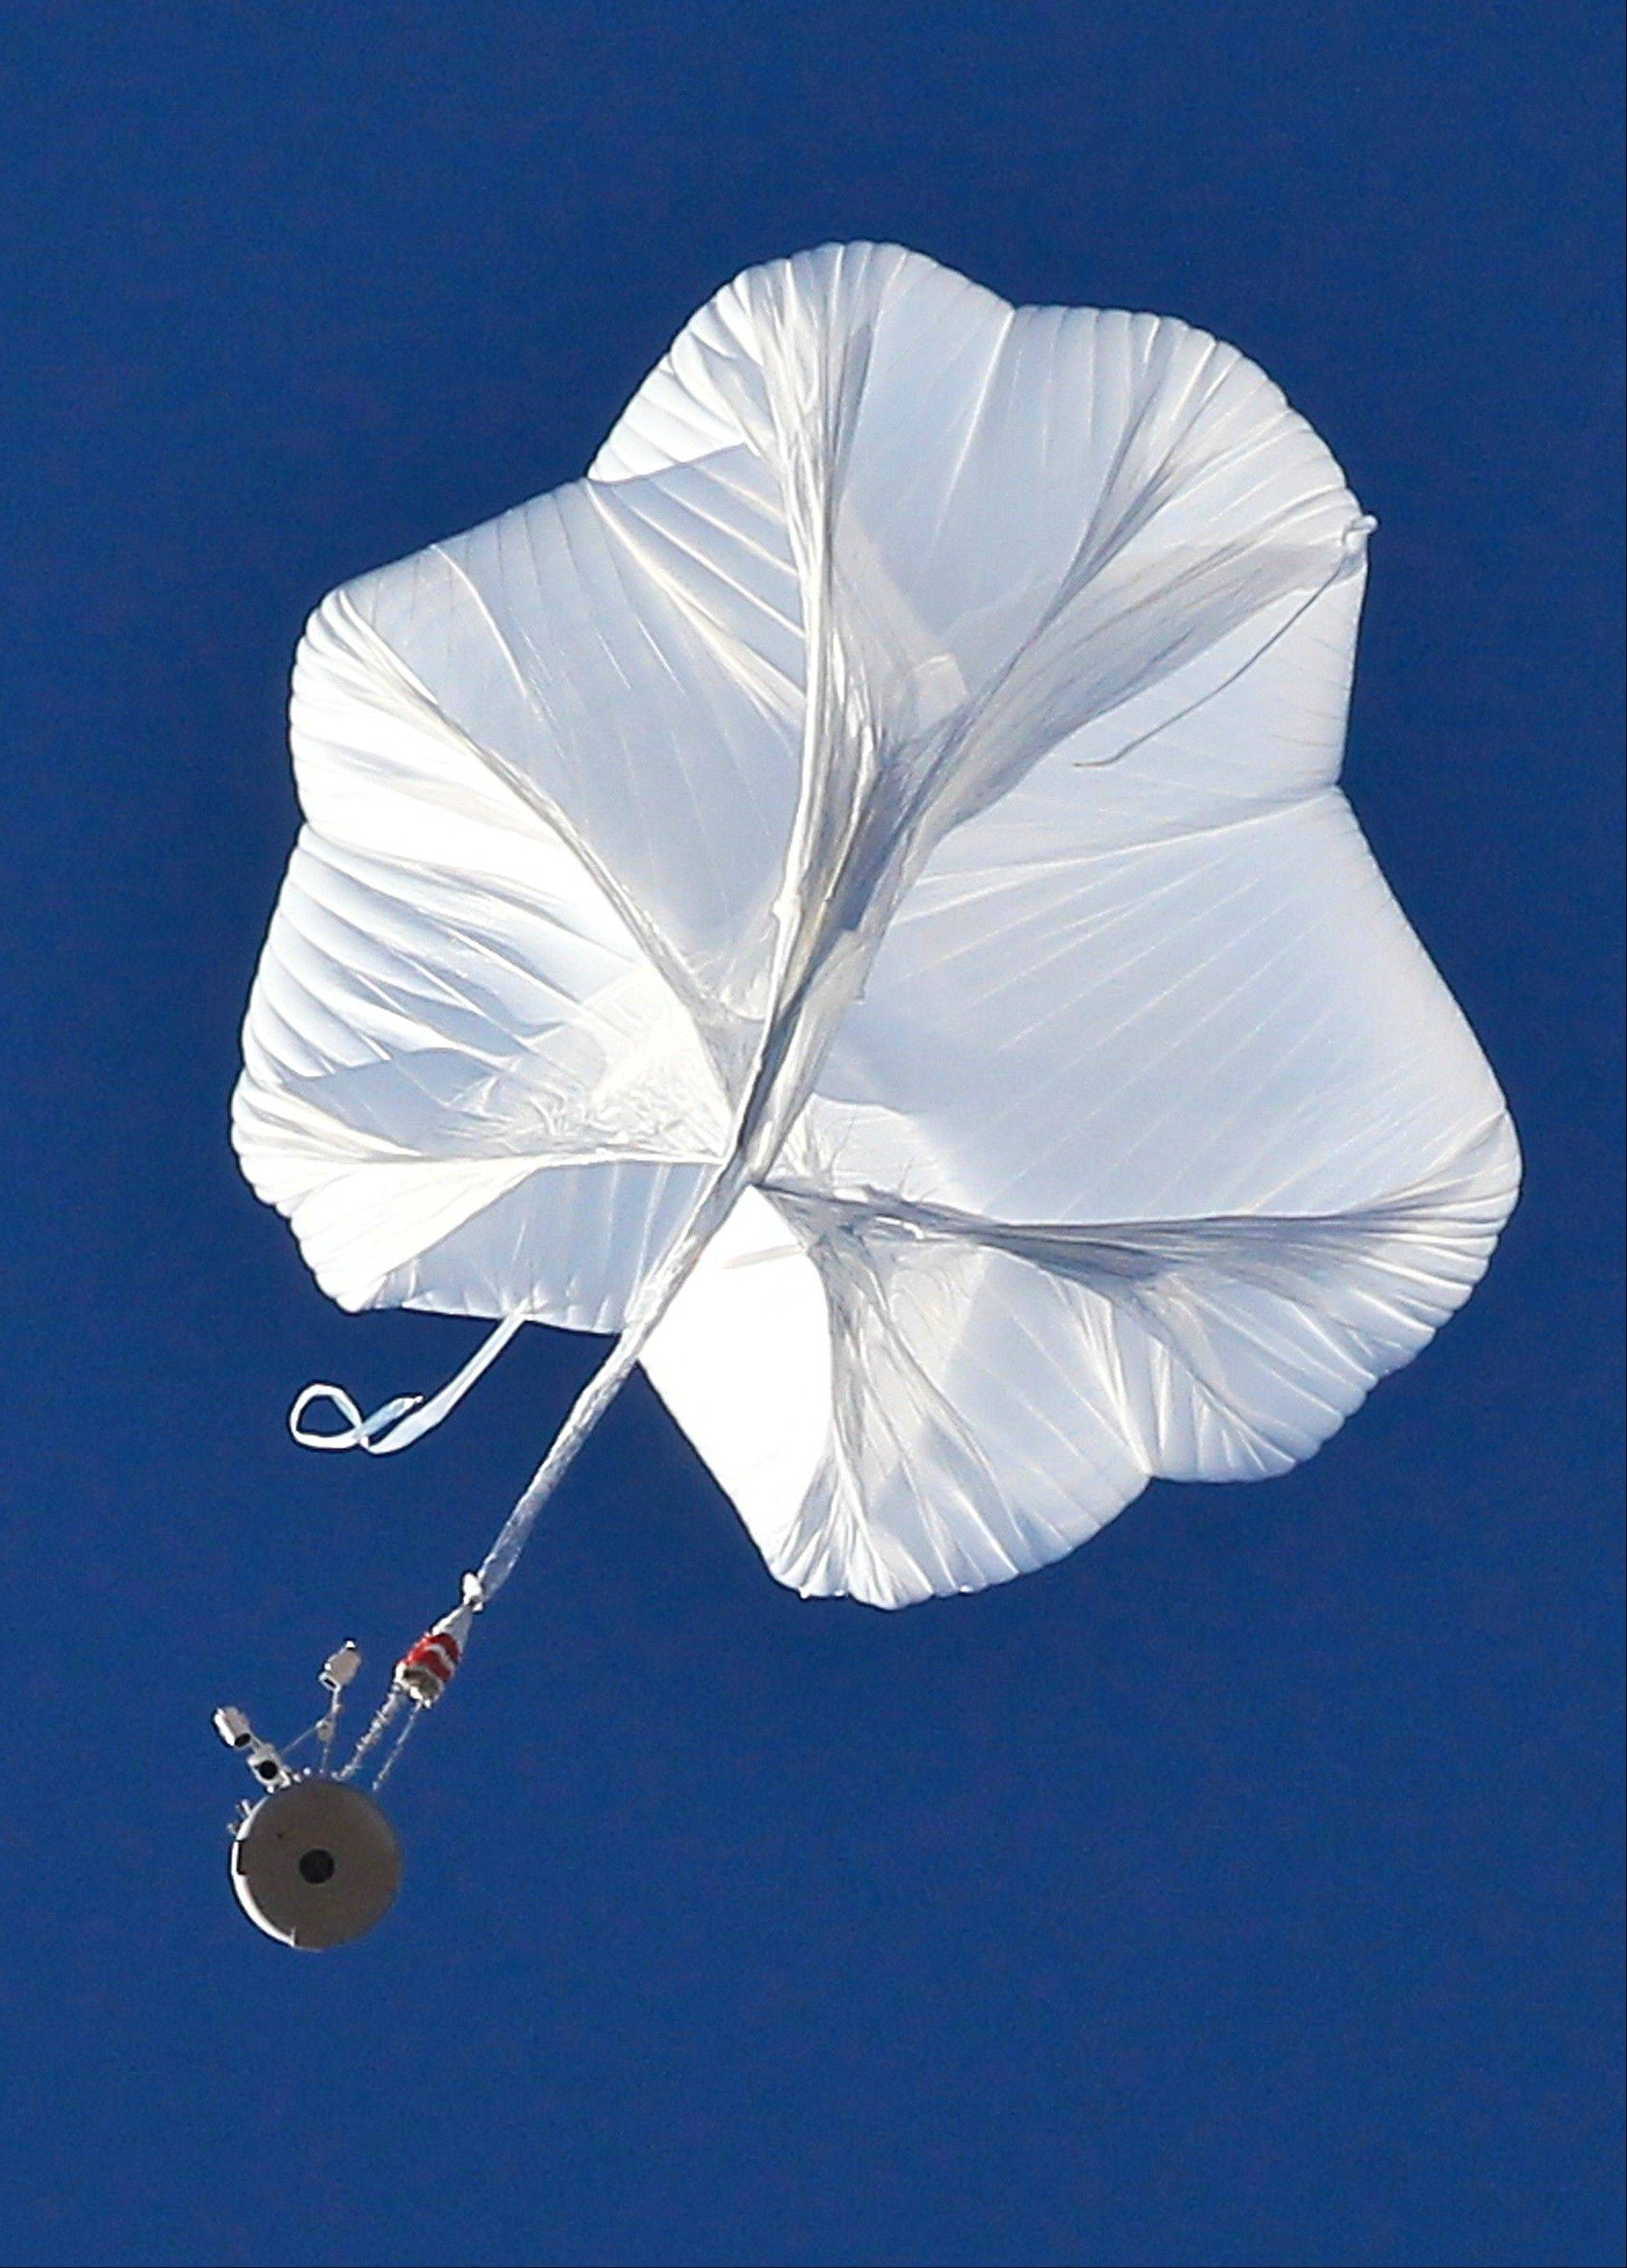 The capsule, bottom left, and attached helium balloon carrying Felix Baumgartner lifts off as he attempts to break the speed of sound with his own body by jumping from a space capsule lifted by a helium balloon Sunday in Roswell, N.M.